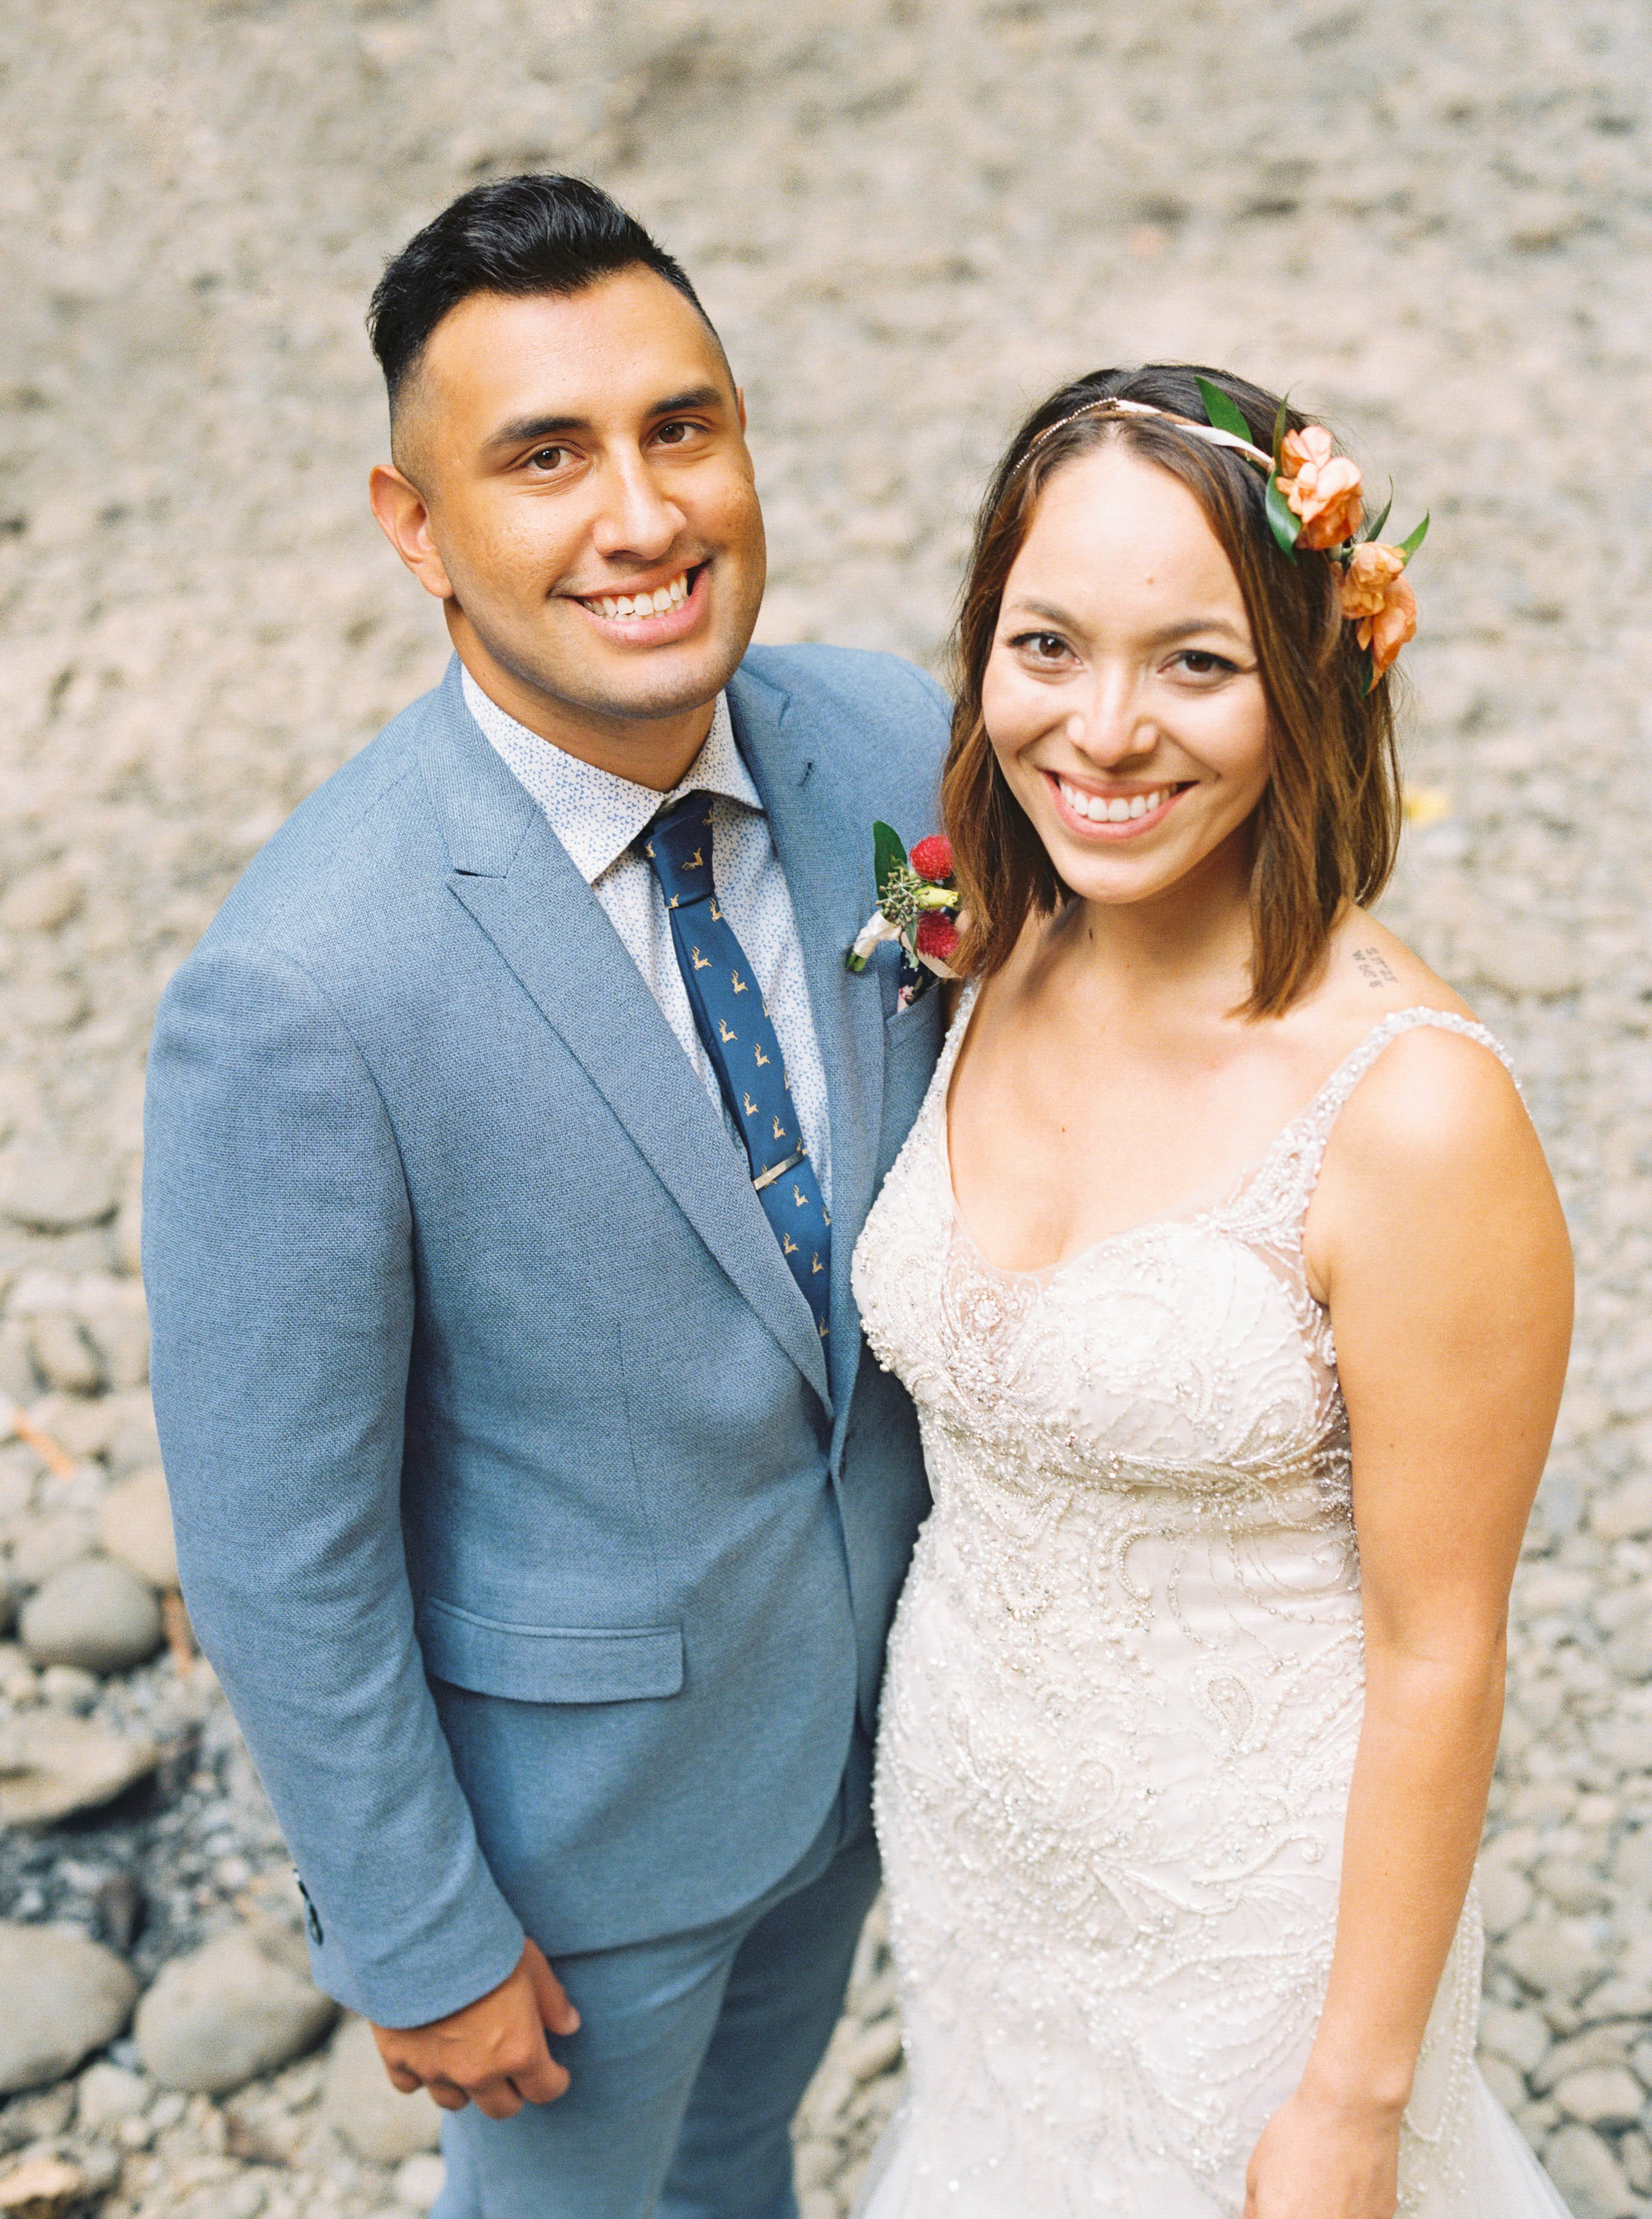 abiqua_falls_elopement_wedding_oregon_photographer_videographer_093.jpg